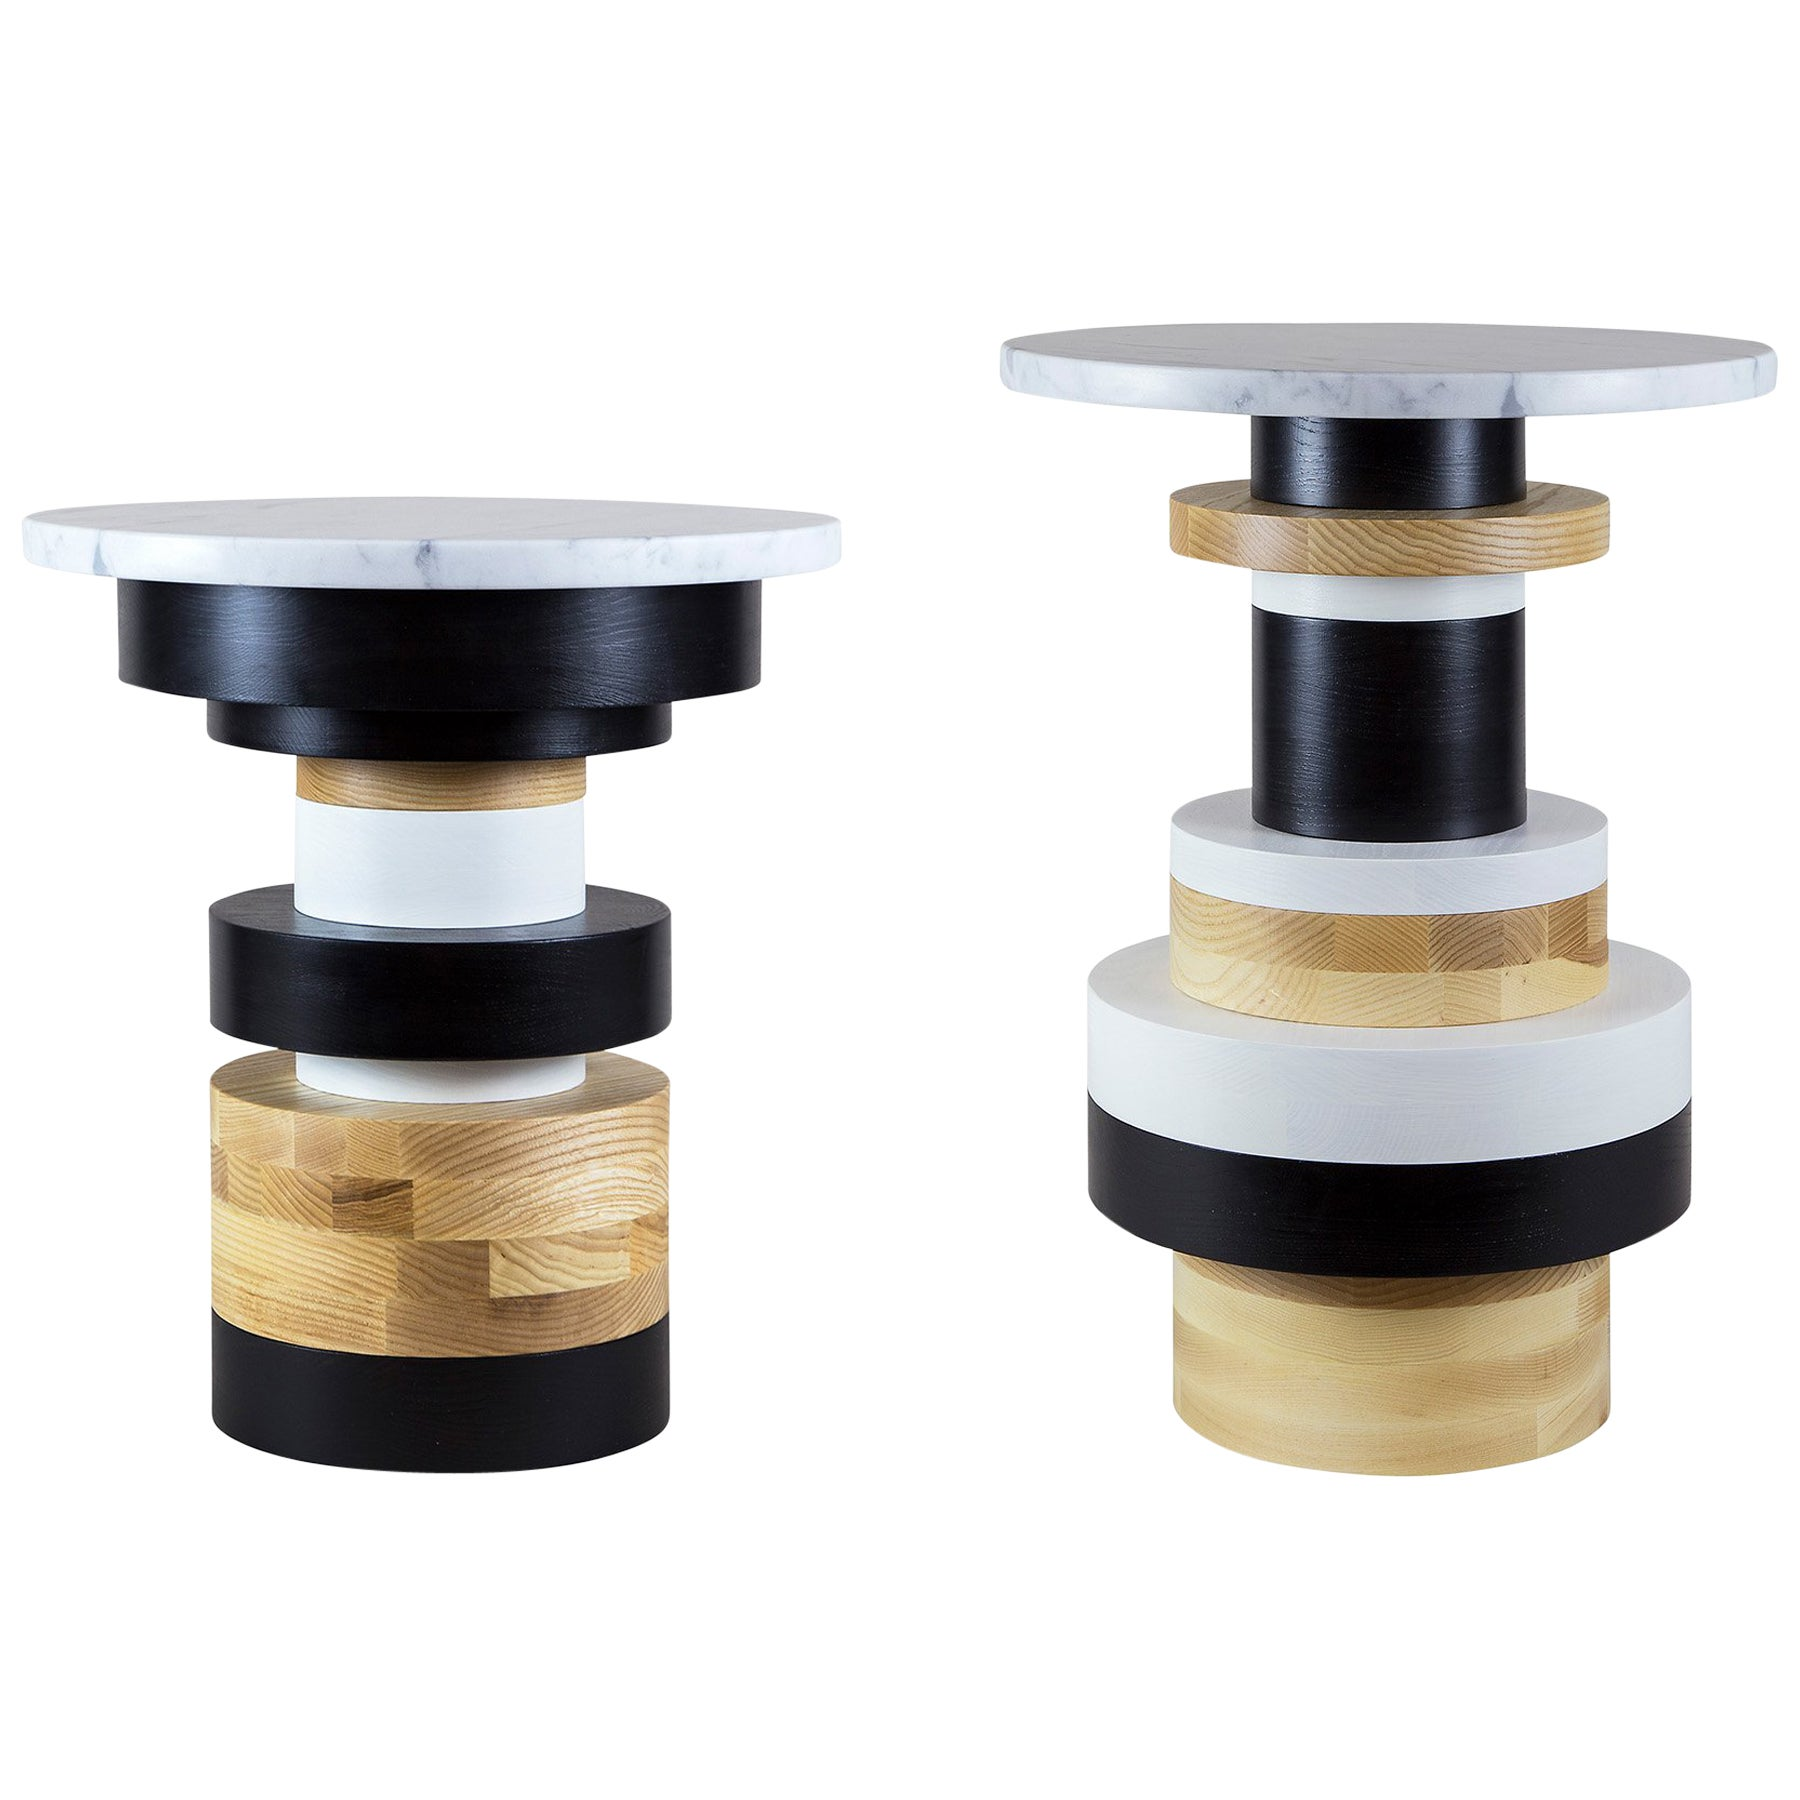 Customizable Sass Side Table Pair from Souda, Short and Tall, Made to Order